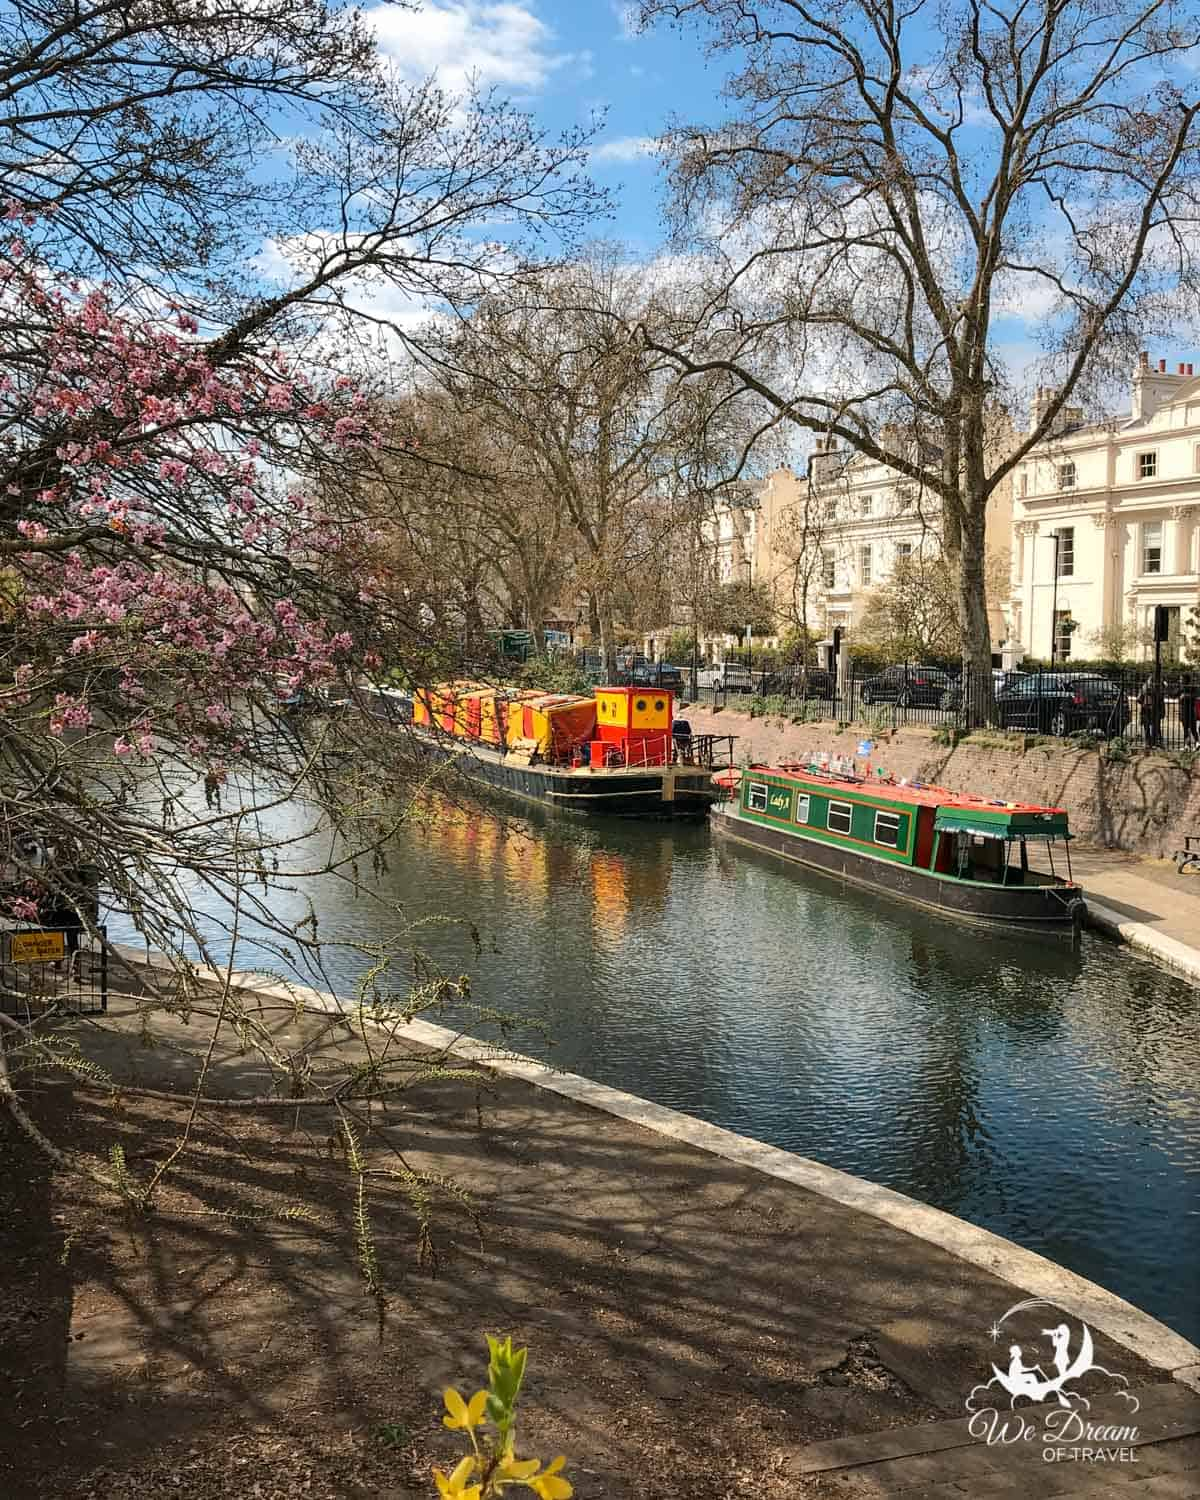 Colourful narrowboats on the Regent's Canal near Rembrandt Gardens in Little Venice London